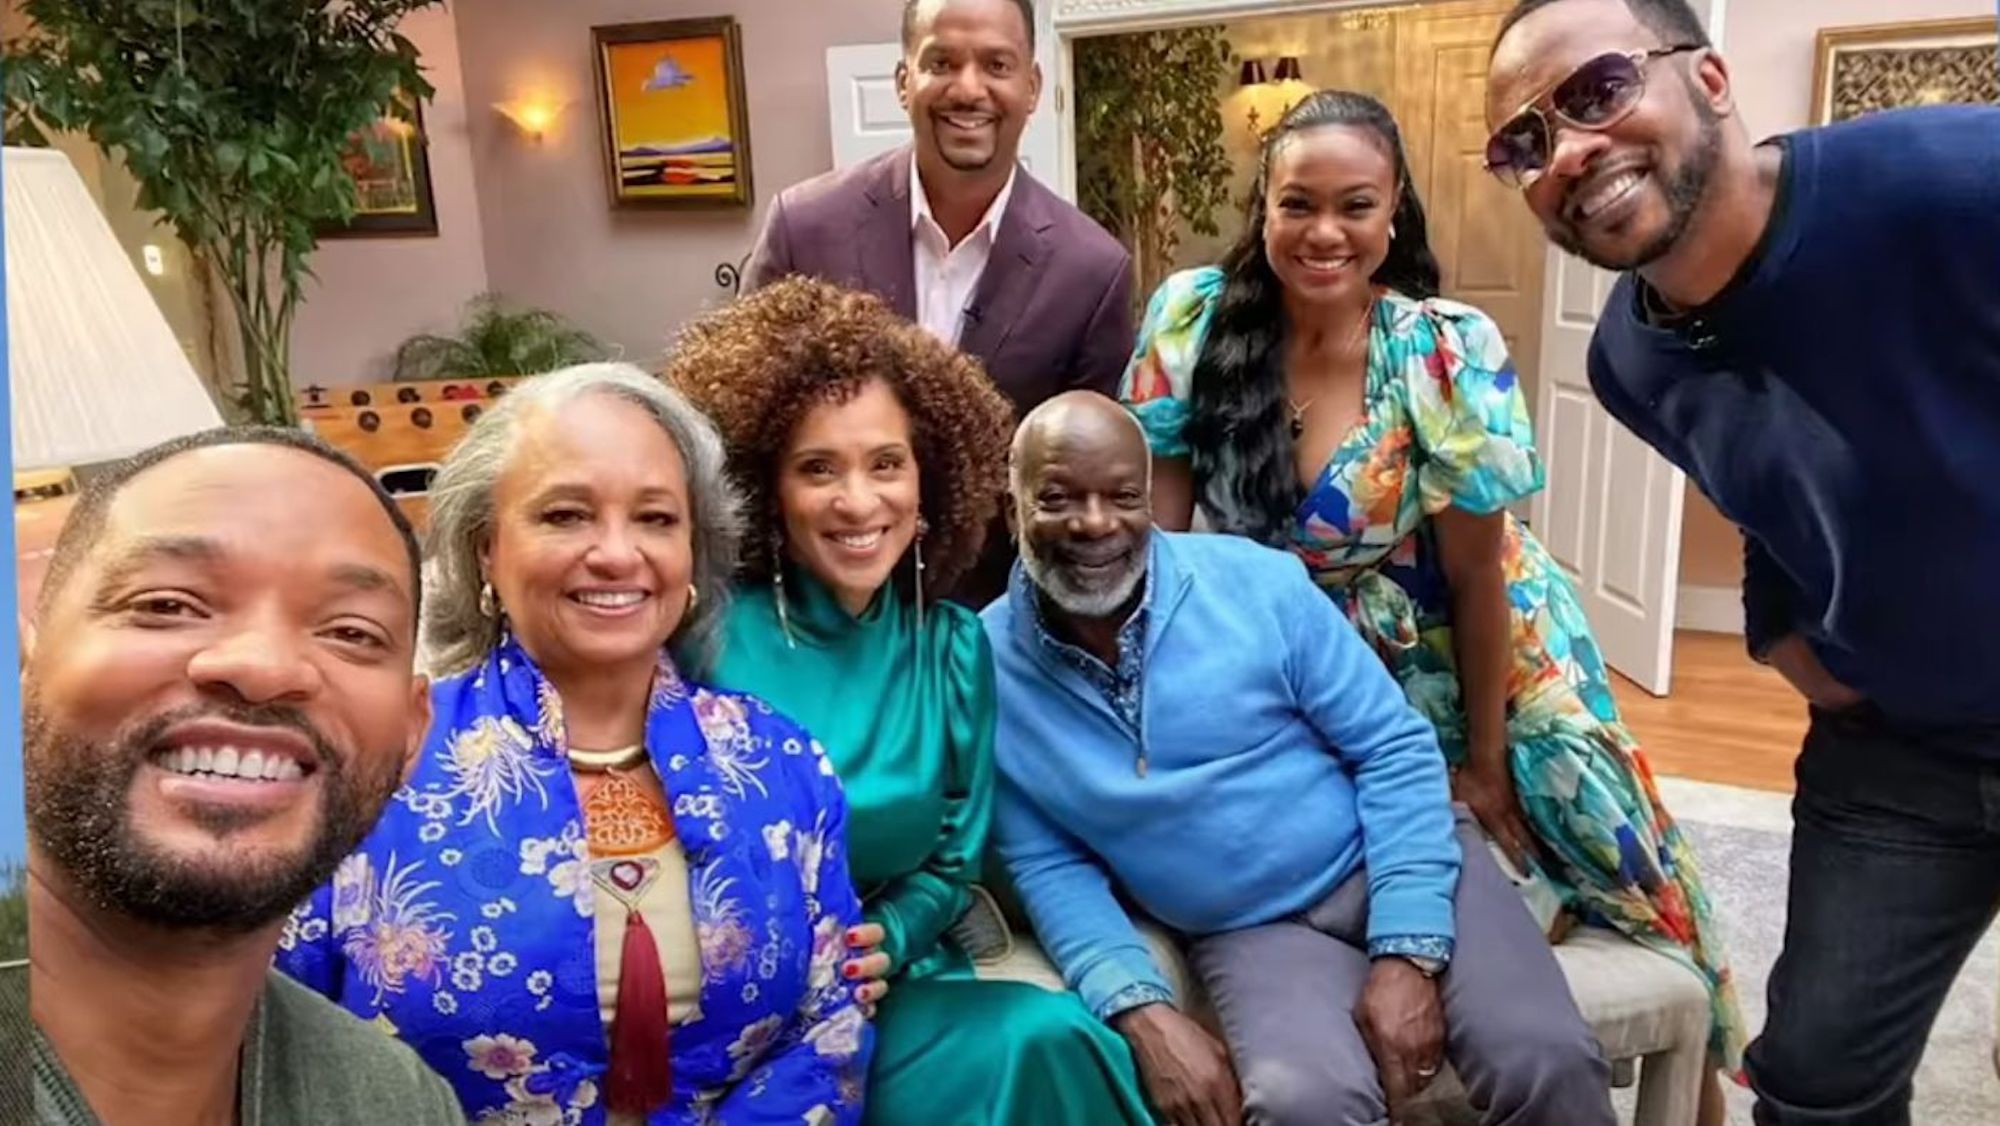 The Trailer Is Here For The Fresh Prince Of Bel-Air Reunion